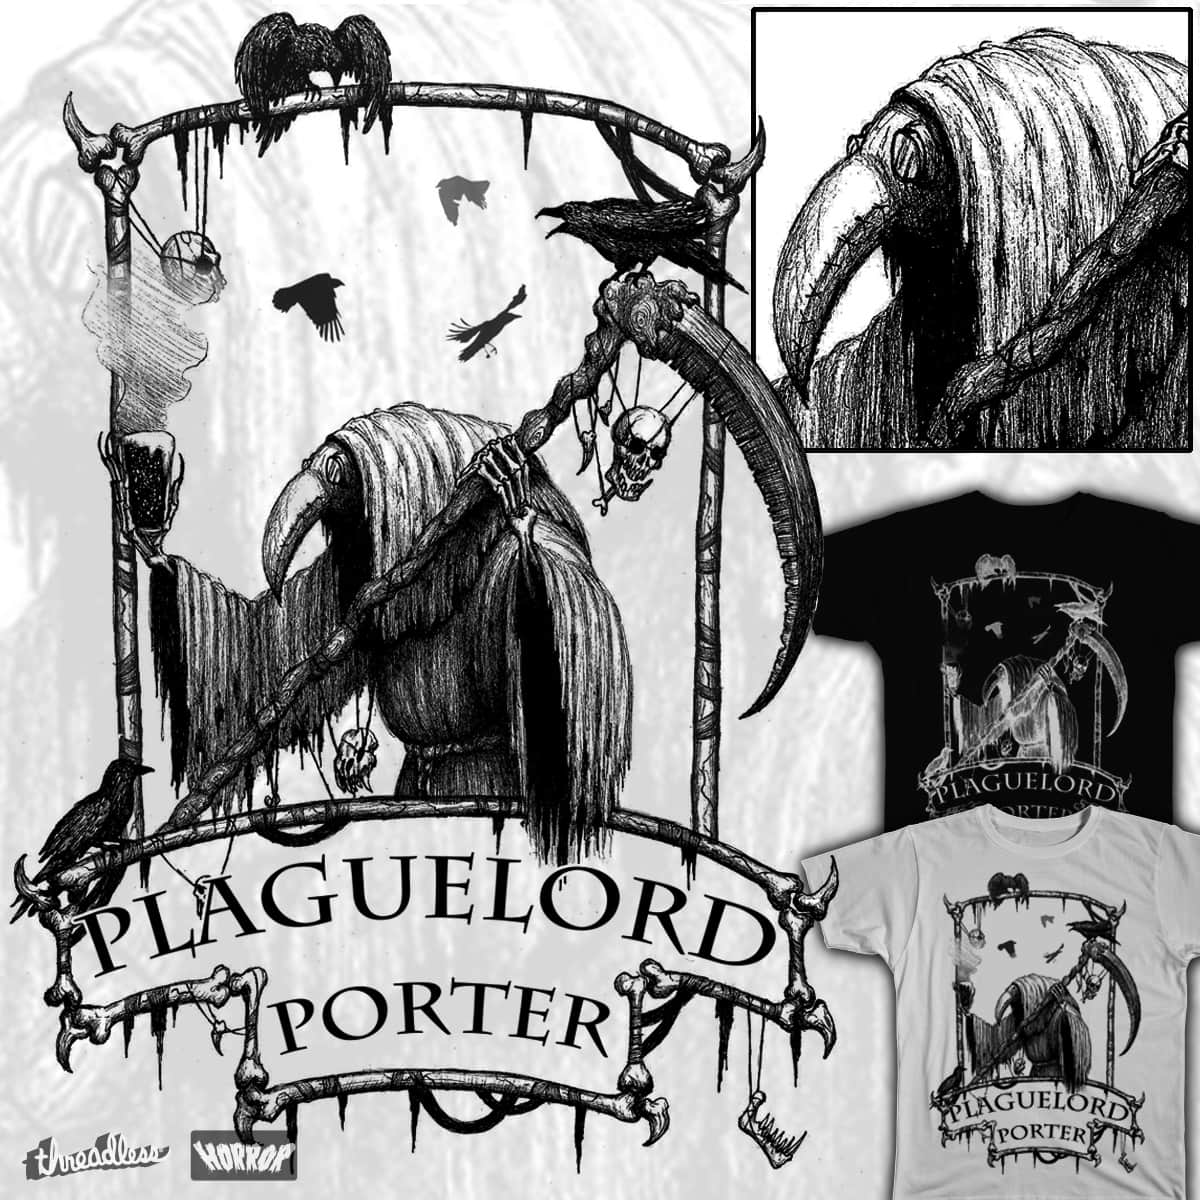 Plaguelord Porter by NW_Studios on Threadless